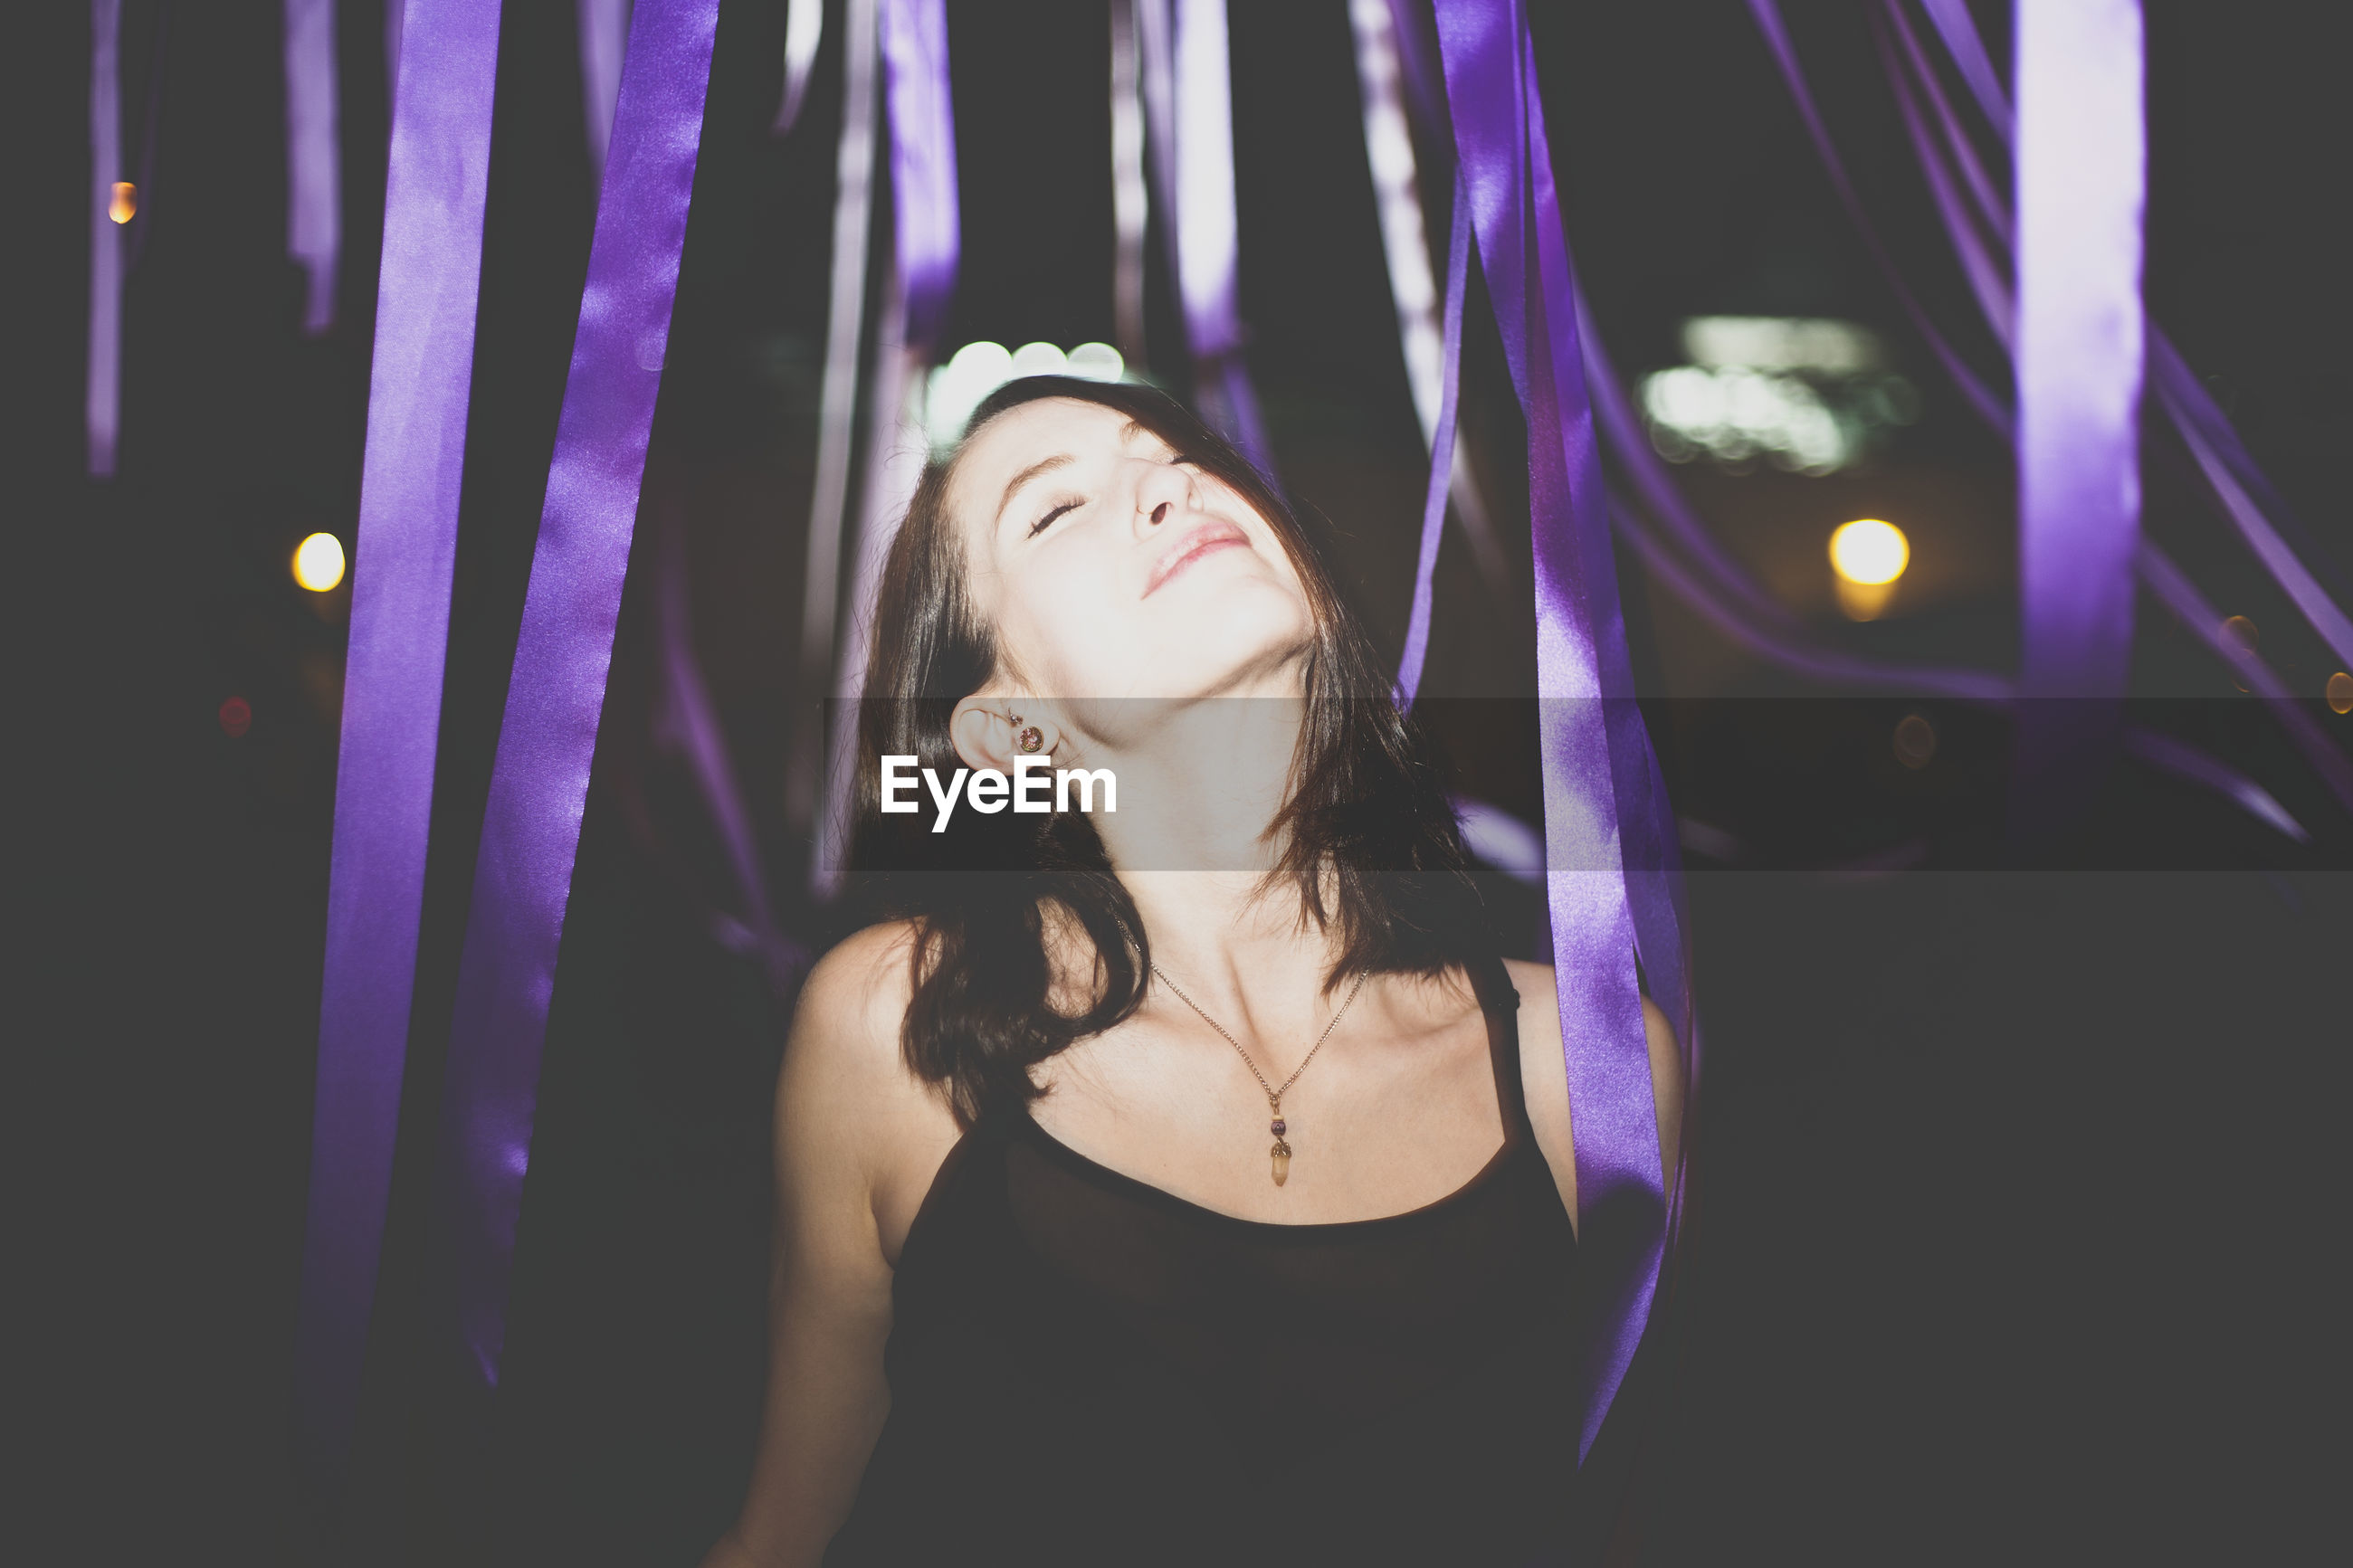 Beautiful young woman with eyes closed standing amidst purple ribbons at night